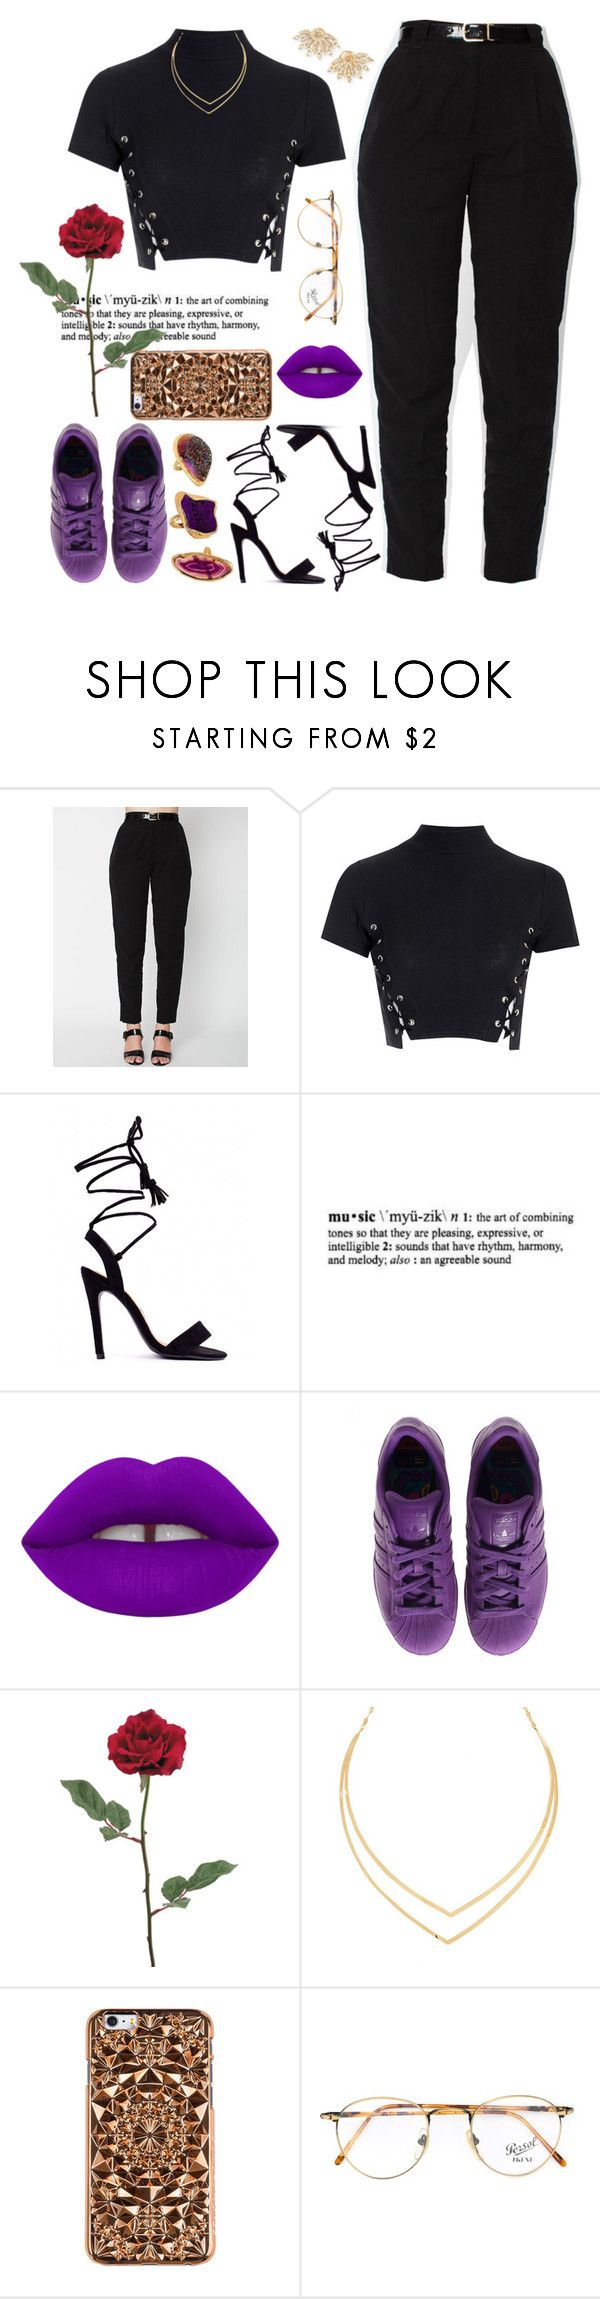 """Purple Rain / R.I.P Prince 💜🌹"" by love-rebelwolf ❤ liked on Polyvore featuring Glamorous, Lamoda, Lime Crime, adidas, Lana, Felony Case, Persol and Sutra"